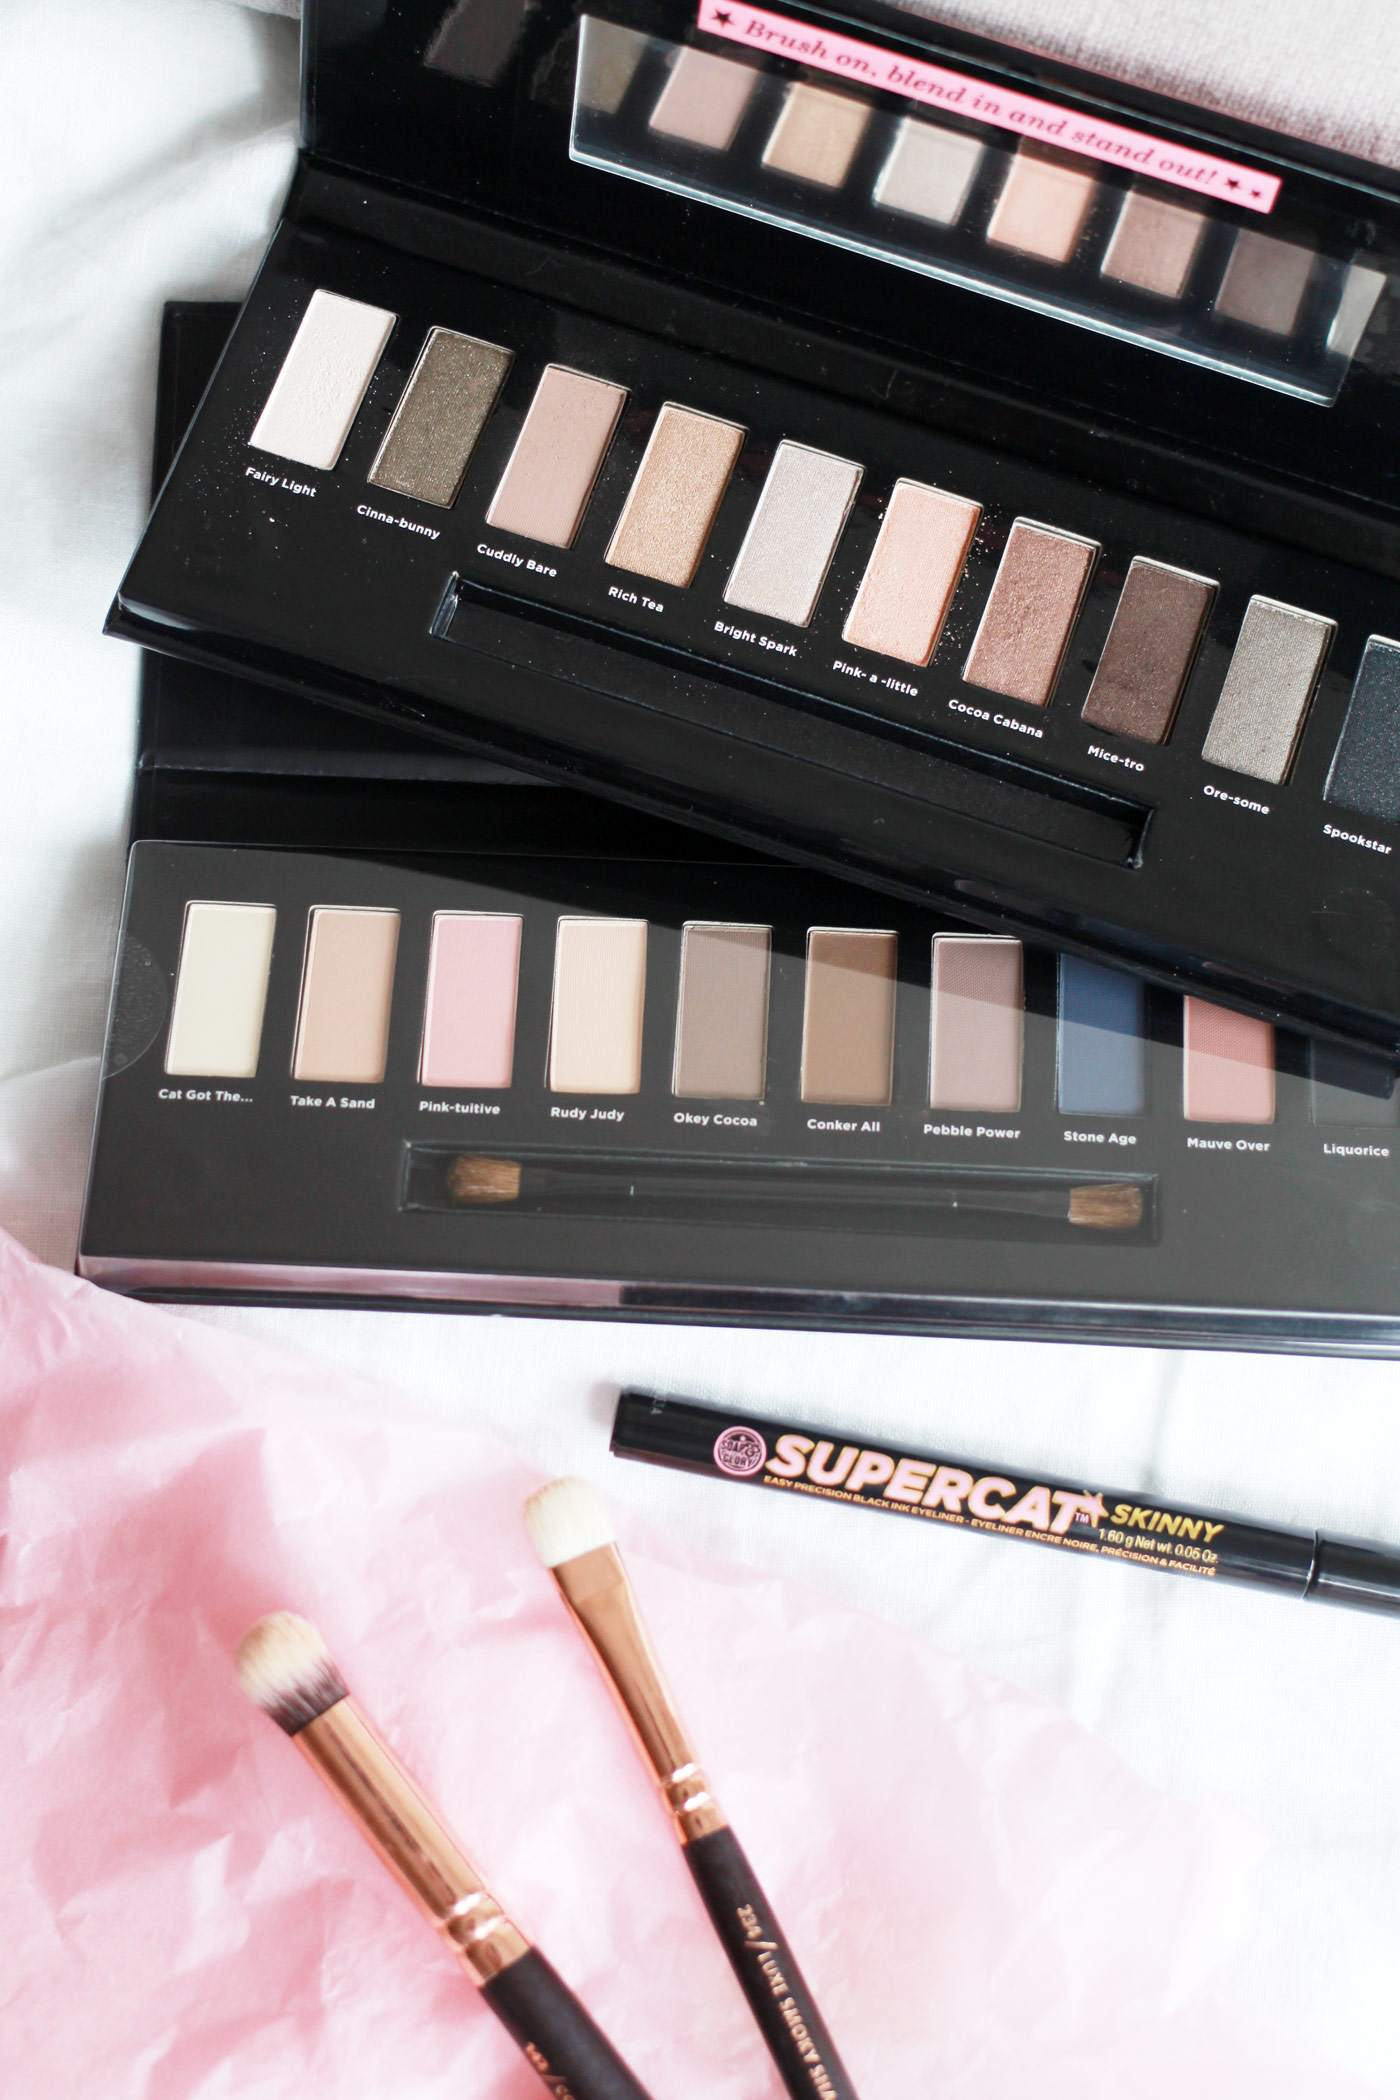 soap-and-glory-ultimatte-shift-to-neutral-palette-make-me-blush-supercat-eyeliner-1